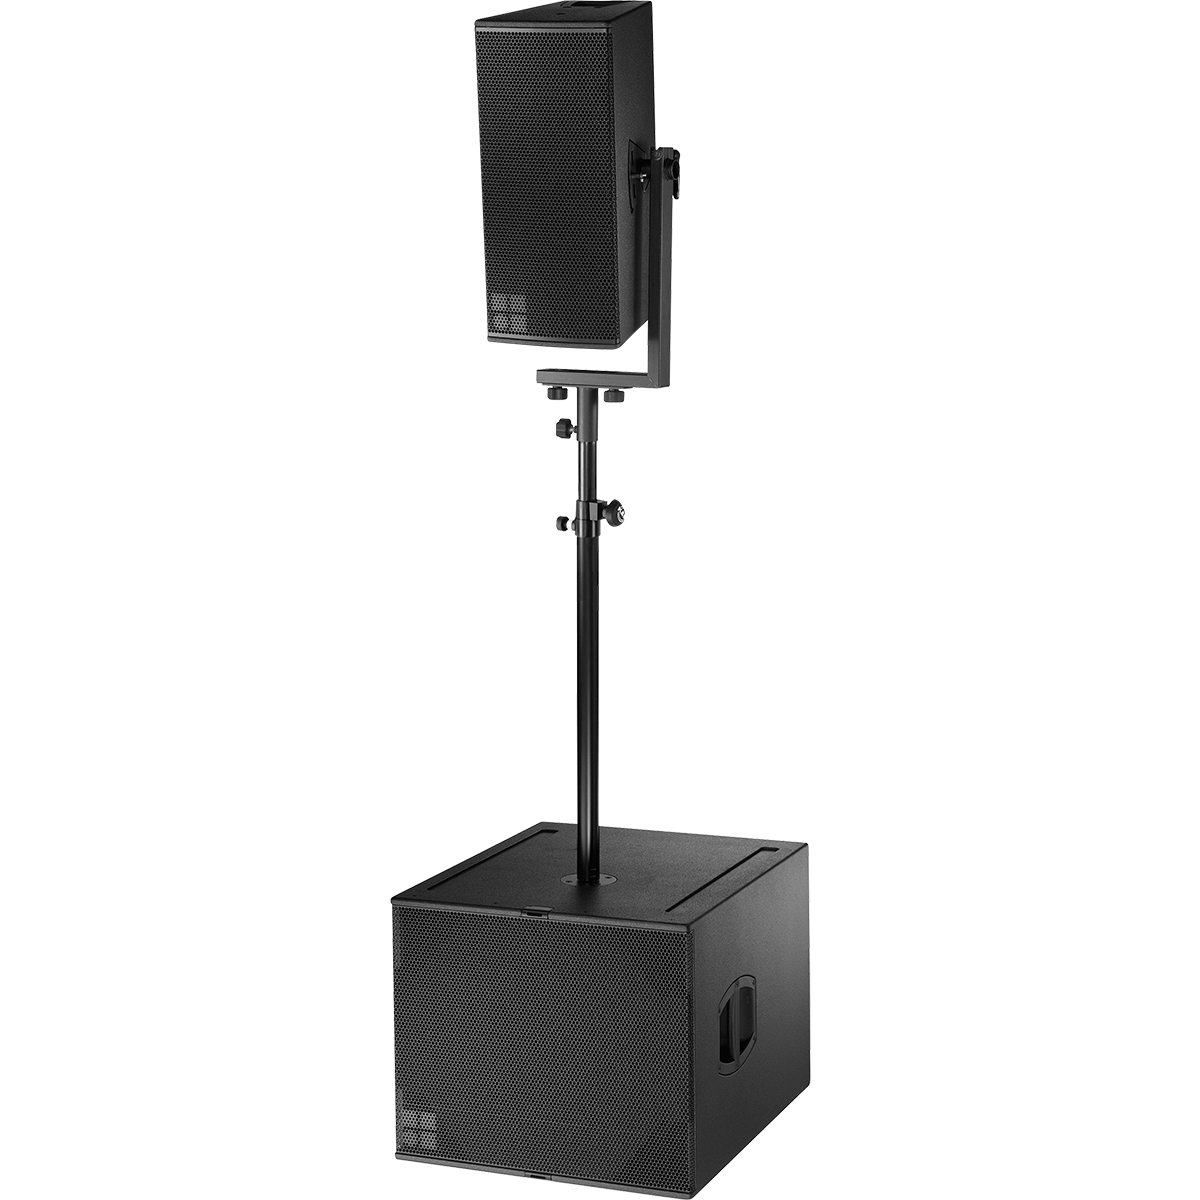 Y7P loudspeaker front with accessory